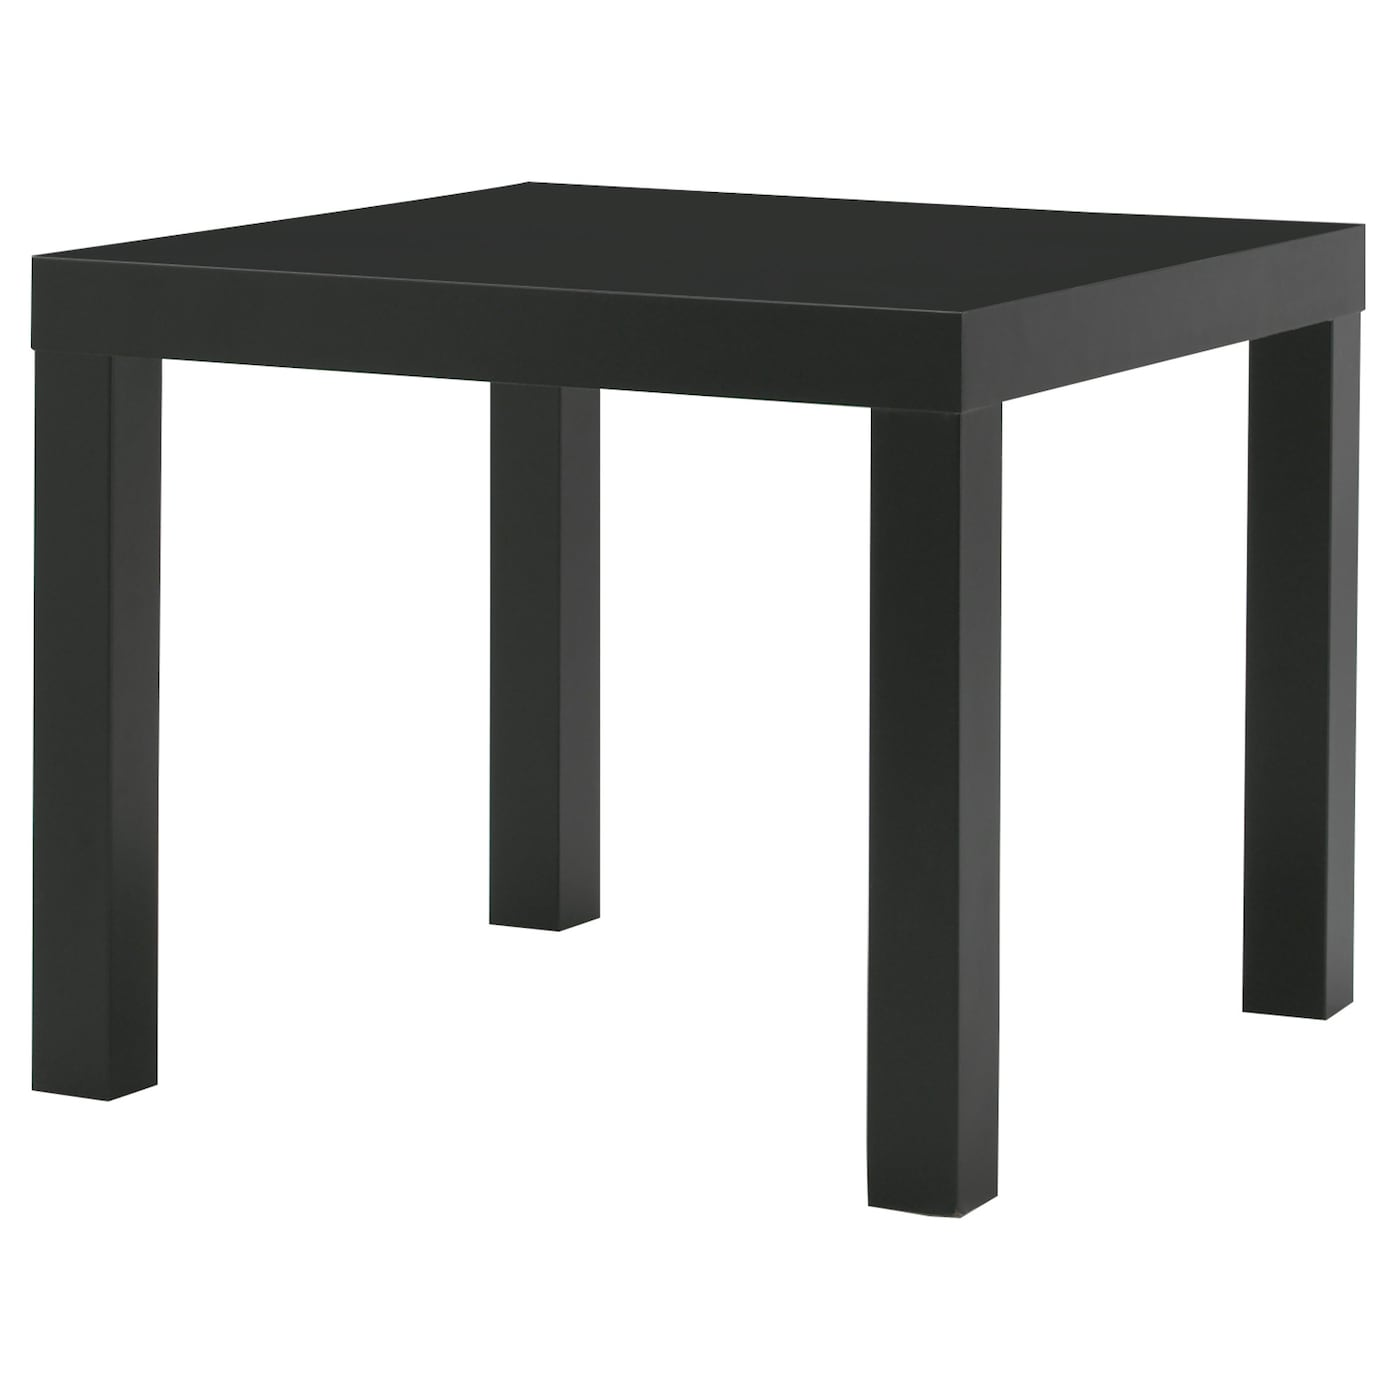 lack side table black 55x55 cm ikea. Black Bedroom Furniture Sets. Home Design Ideas